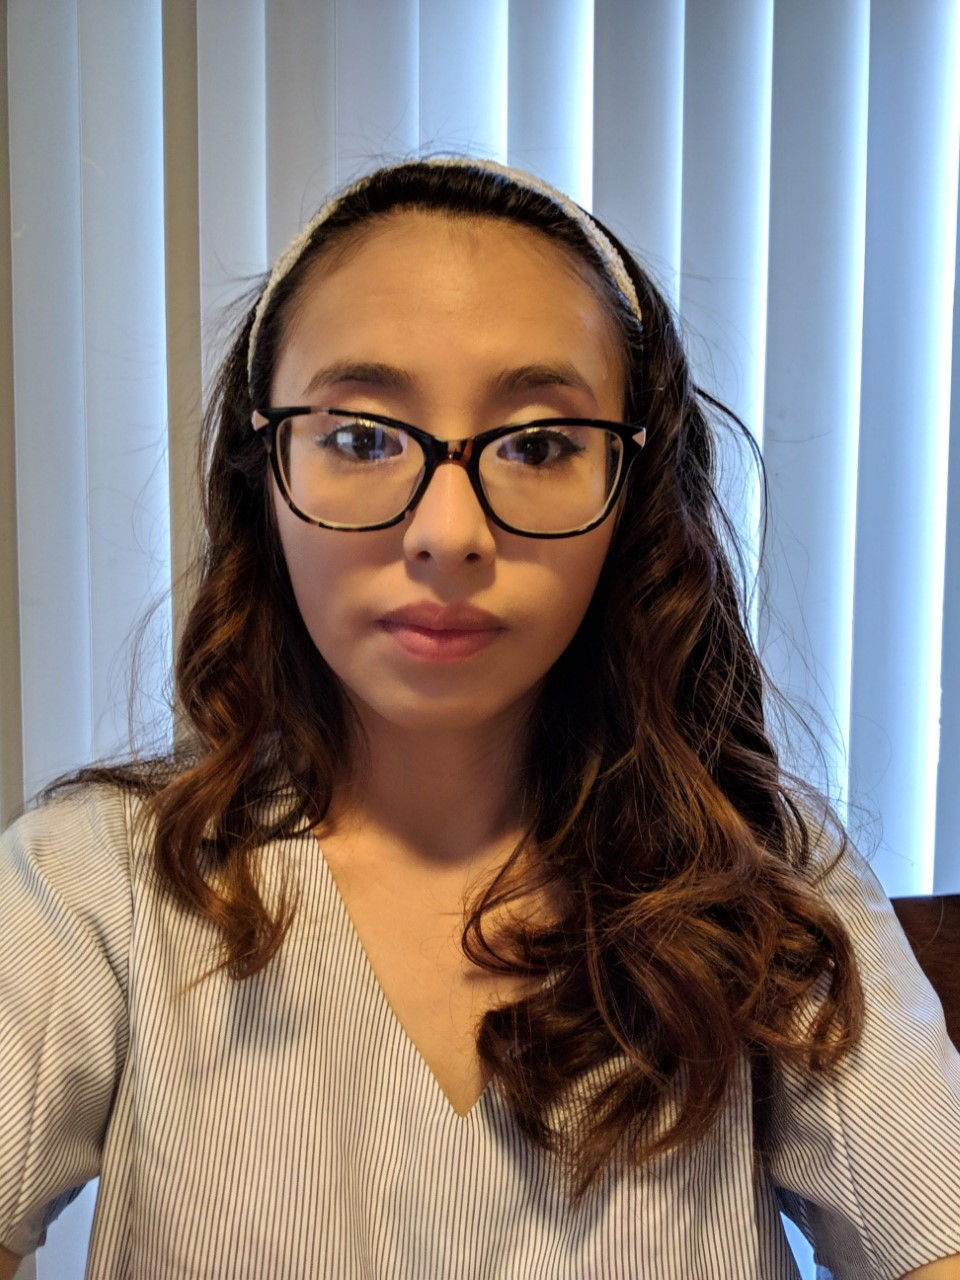 Picture of Kimberly, a young woman, wearing glasses, staring at camera